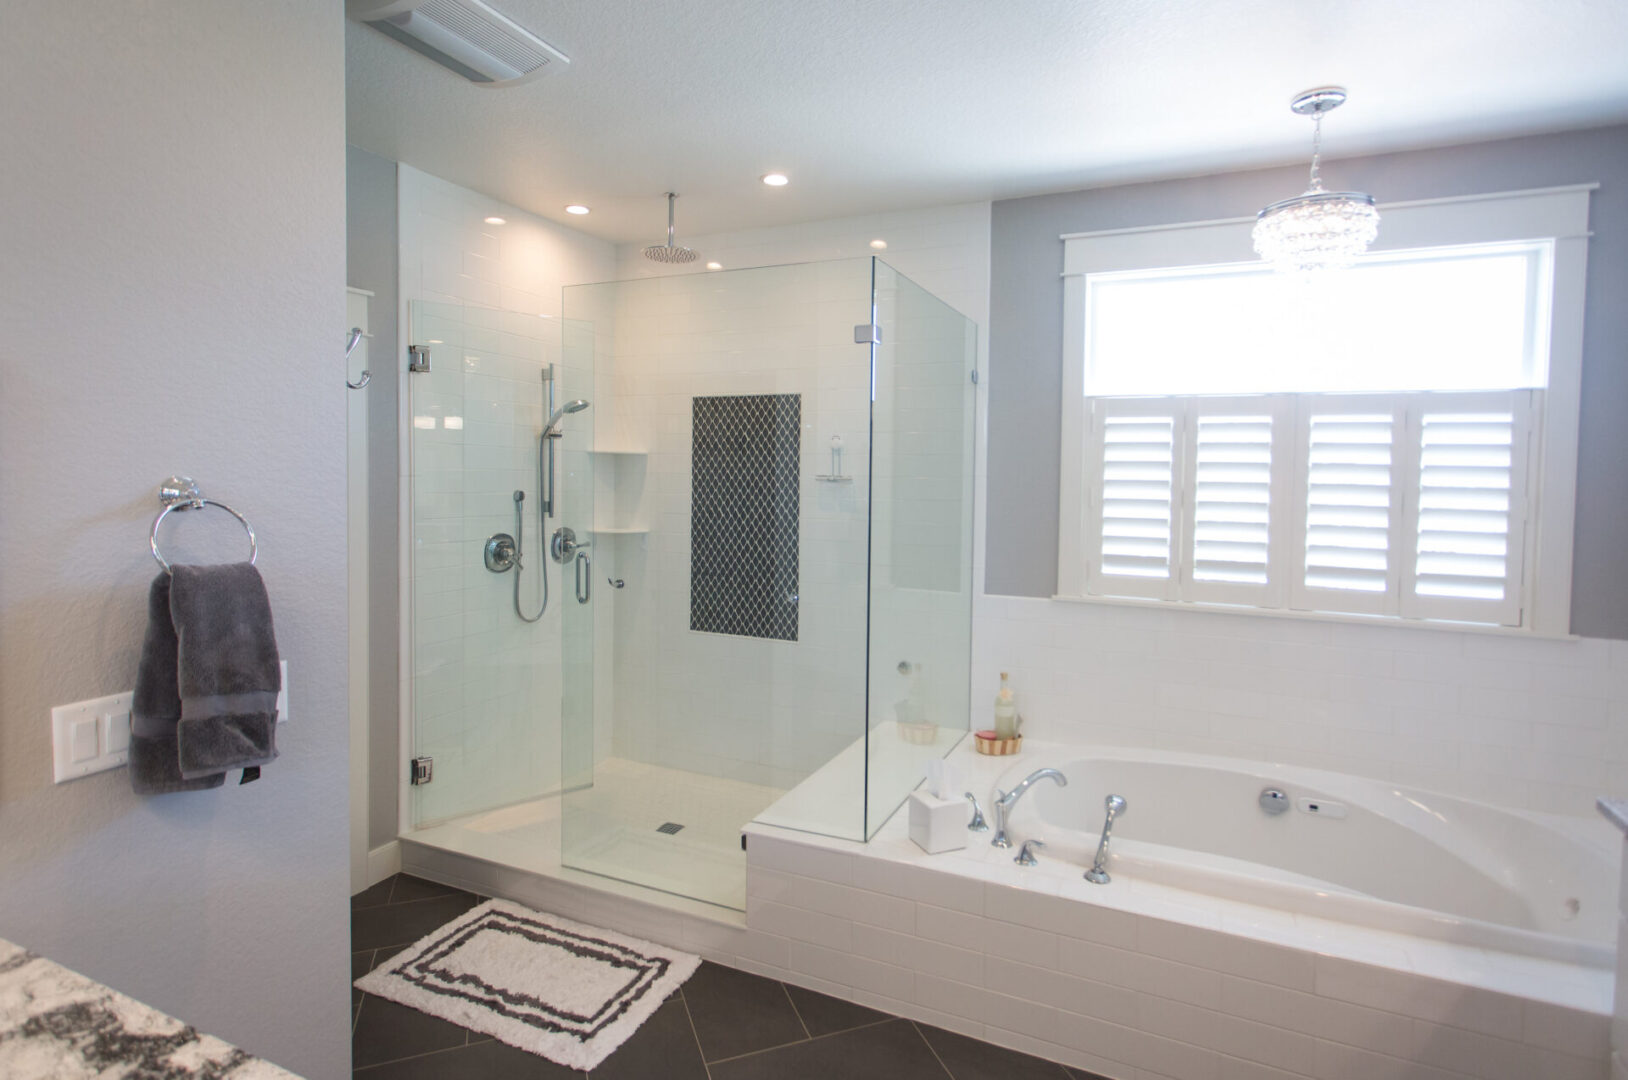 bathtub and shower enclosure with tiny chandelier